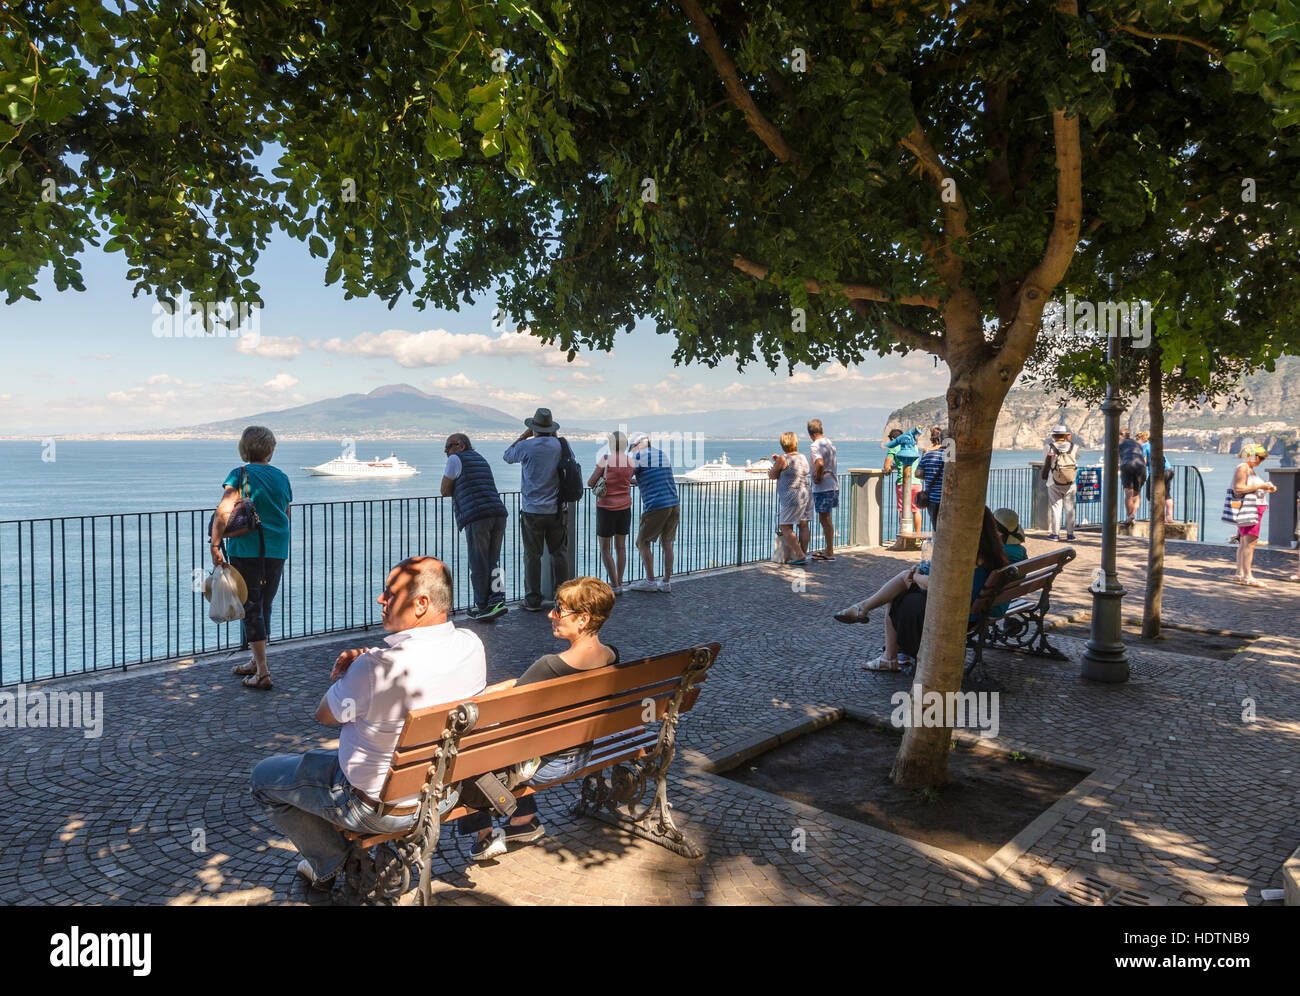 Tourists at the sea front in Villa Comunale Park Sorrento looking at the Gulf of Naples with Mount Vesuvius in the - Stock Image